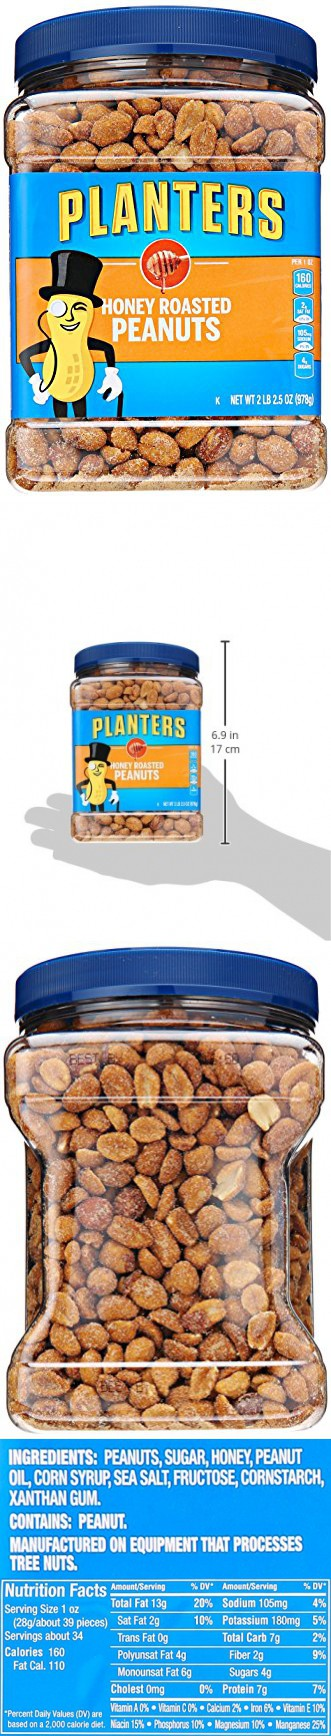 roasted tubes count cashews kraft foods honey peanuts planter products mrcandyshop planters collections